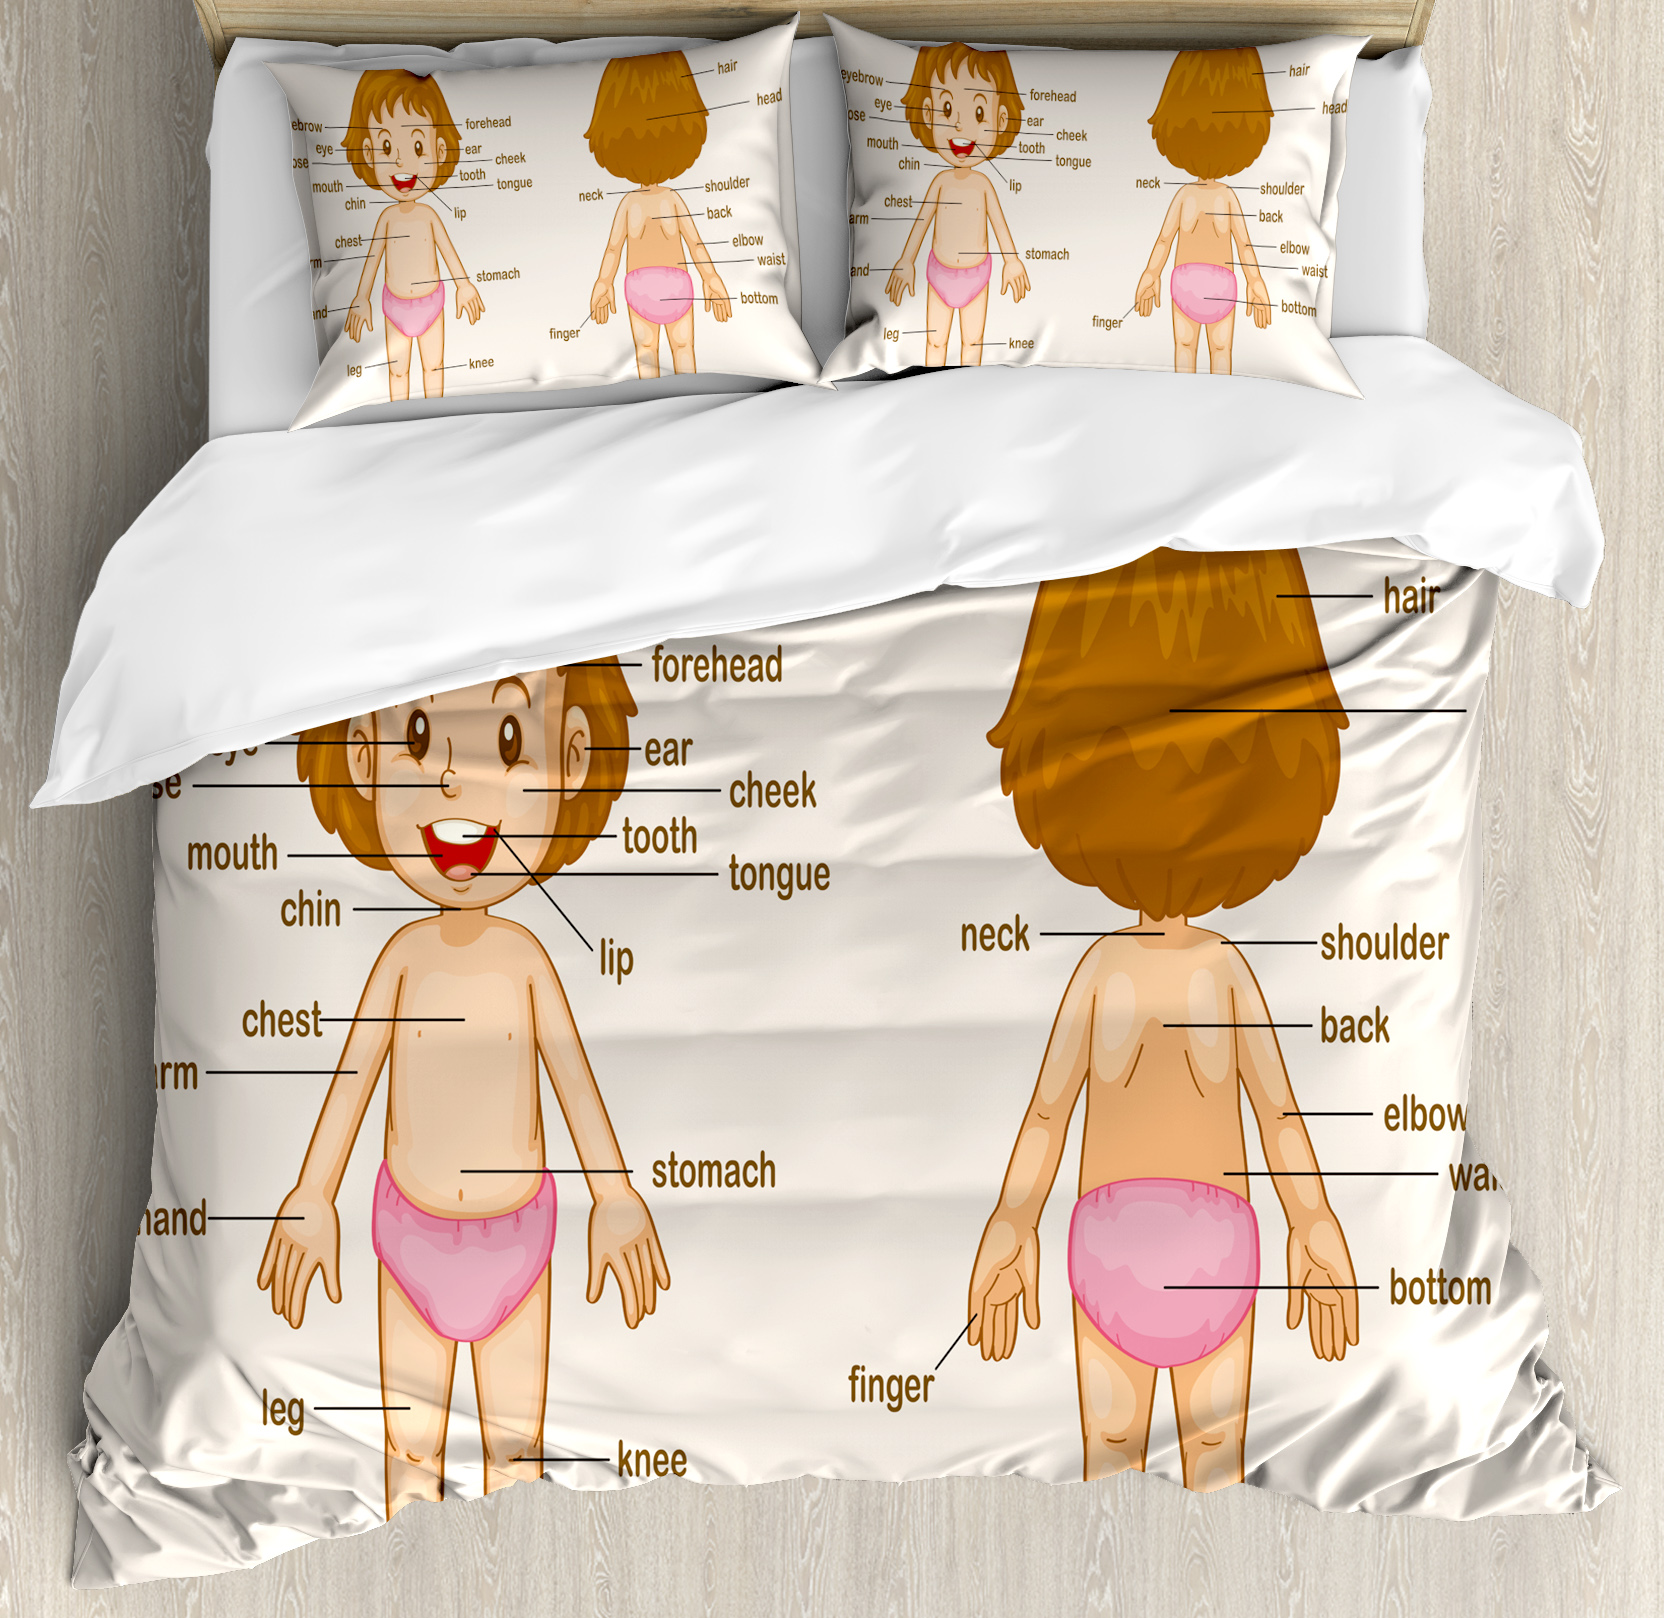 Educational Queen Size Duvet Cover Set, Cute Little Cartoon Girl Children Body Parts School Science Class, Decorative 3 Piece Bedding Set with 2 Pillow Shams, Pale Pink Brown Cream, by Ambesonne